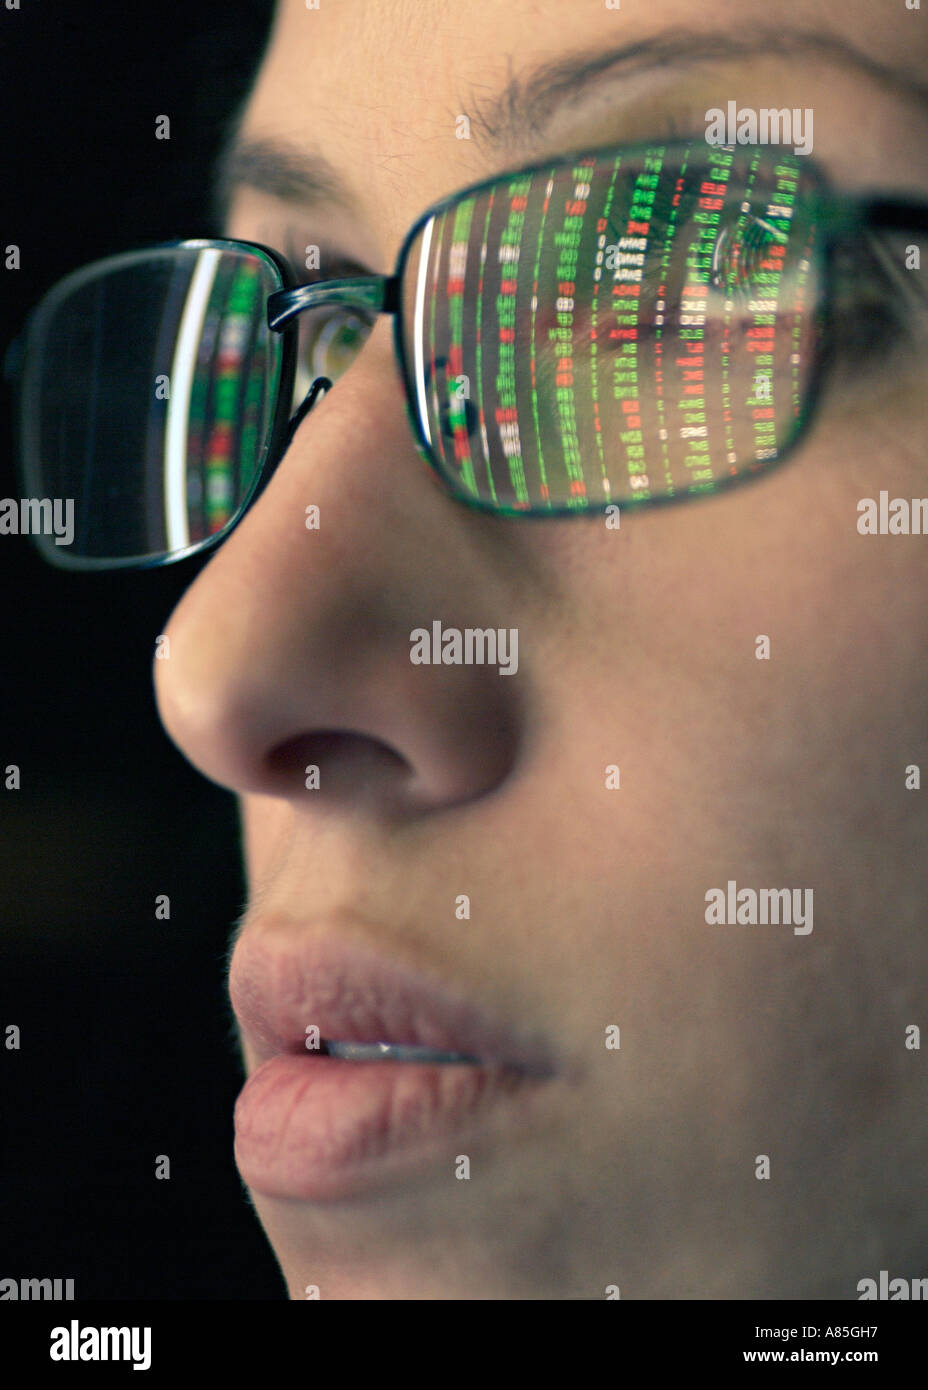 Stock Broker with Stock Market Prices Reflected on Spectacles, Close Up. - Stock Image